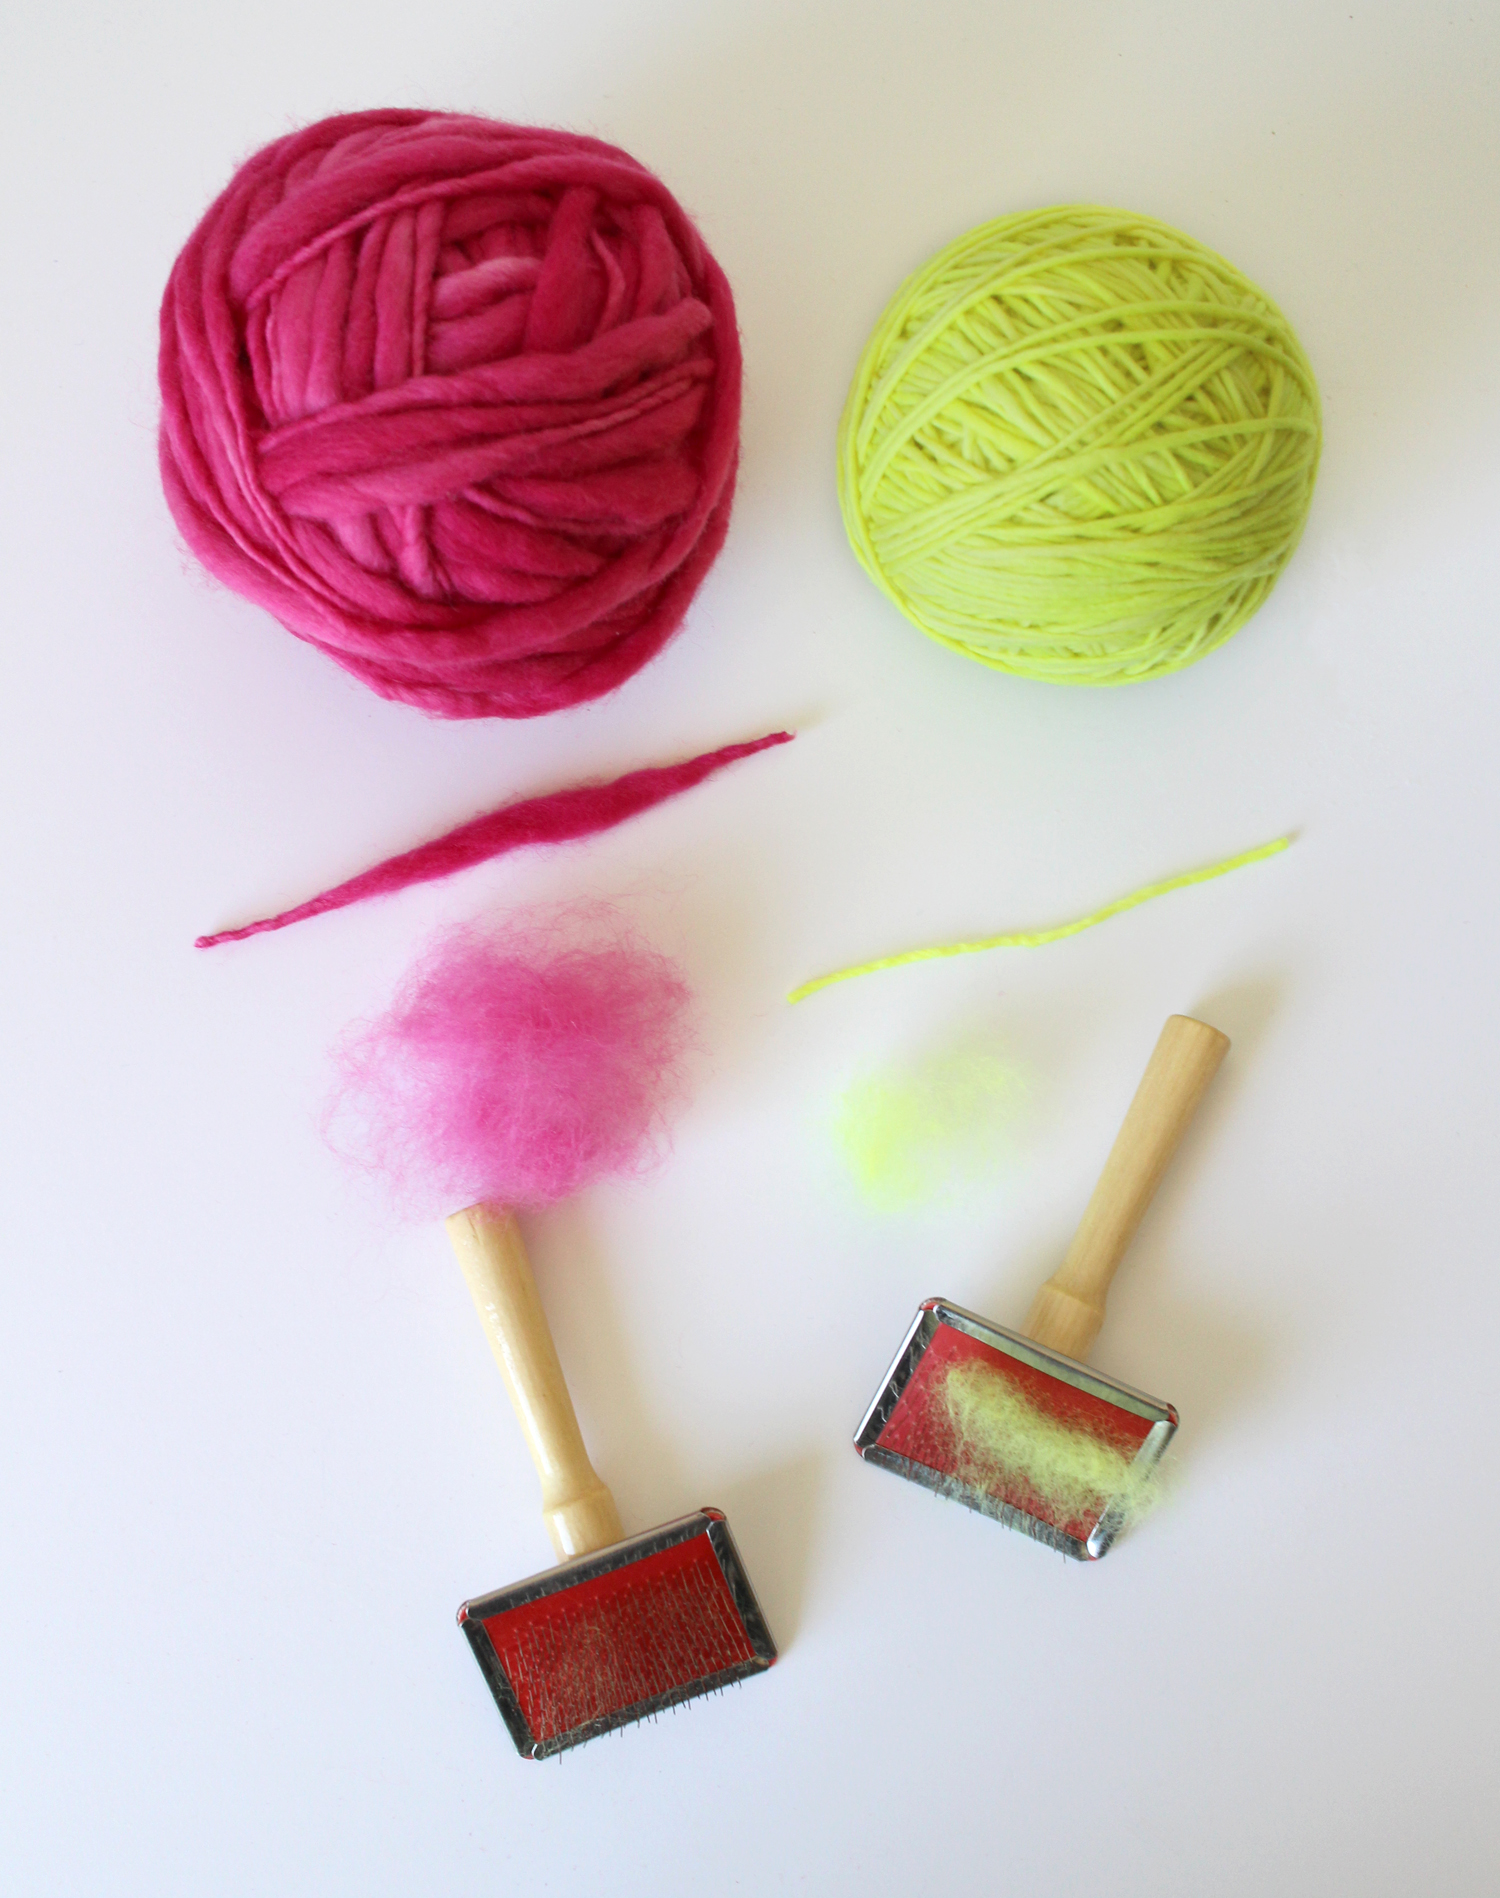 Using yarn instead of wool roving